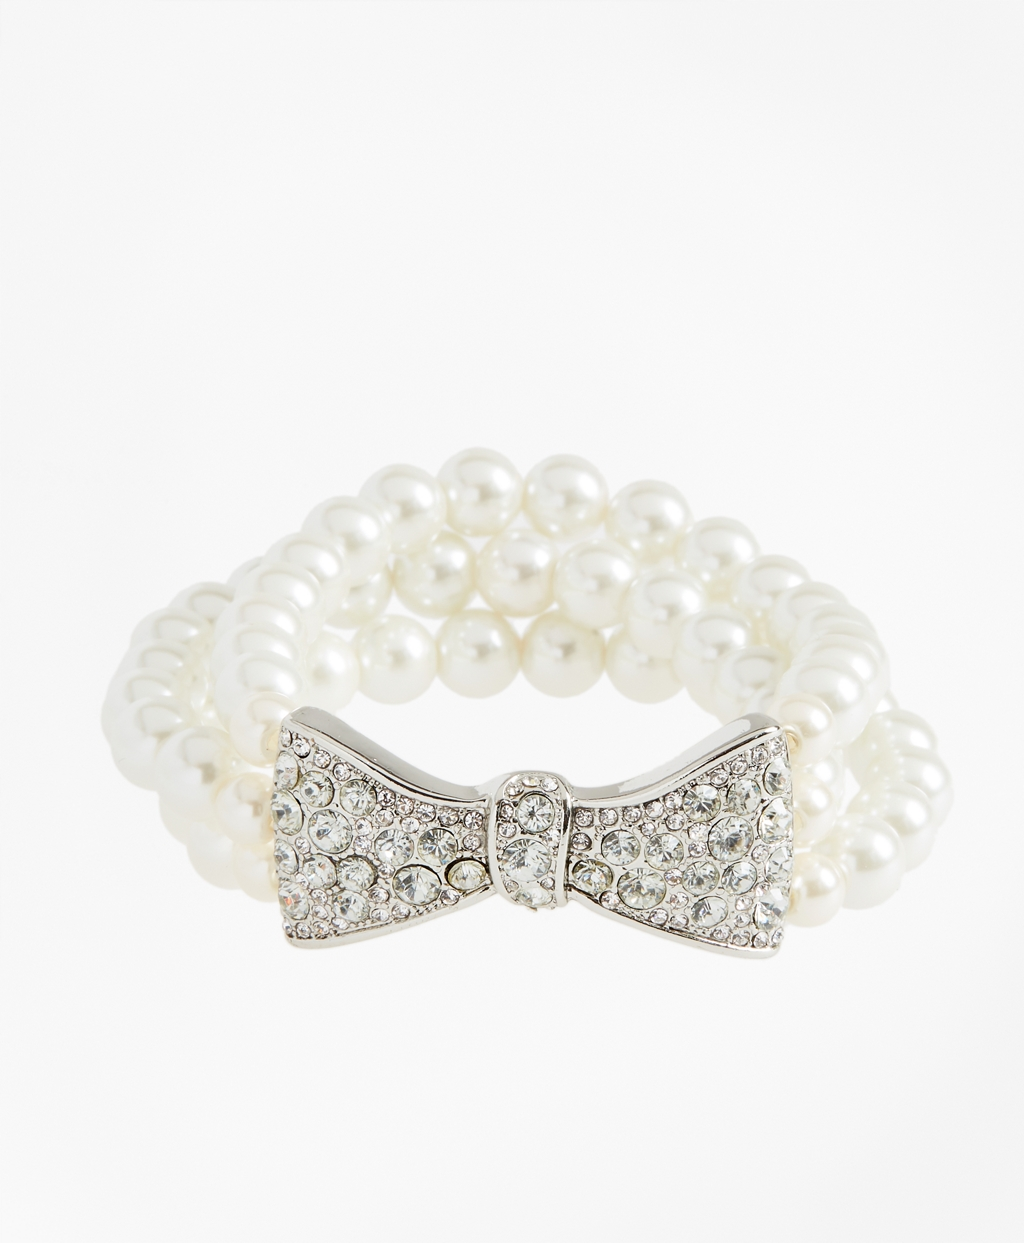 1930s Jewelry | Art Deco Style Jewelry Brooks Brothers Womens Glass Pearl And Rhinestone Bow Bracelet $48.00 AT vintagedancer.com